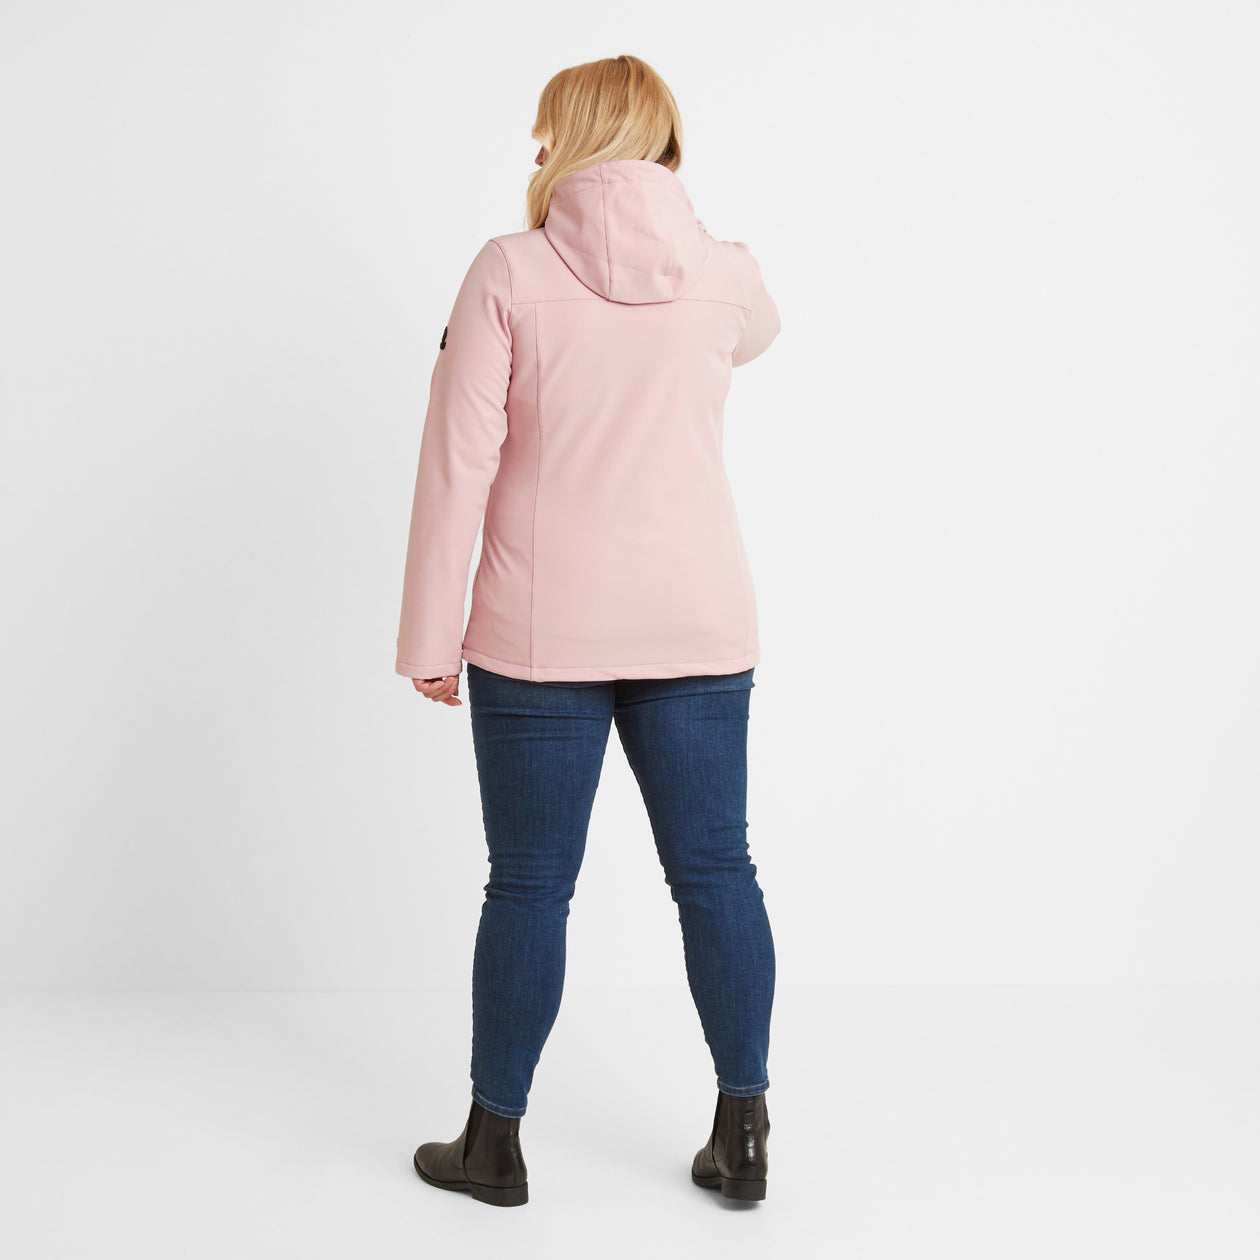 Keld Womens Softshell Hooded Jacket - Rose Pink image 8